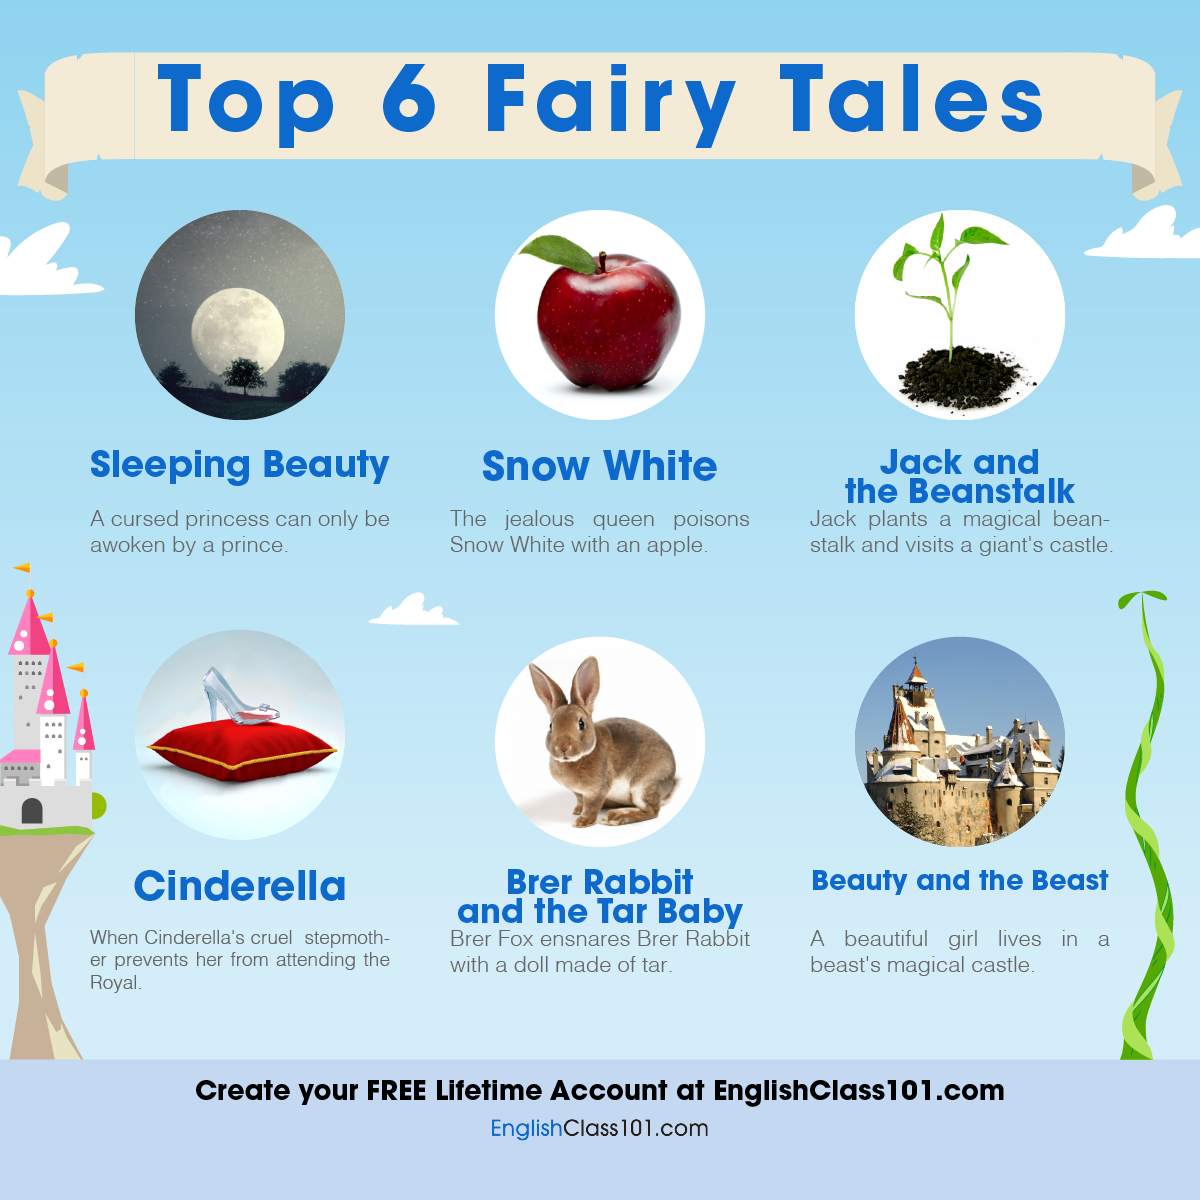 Top 6 Fairy Tales in the United States